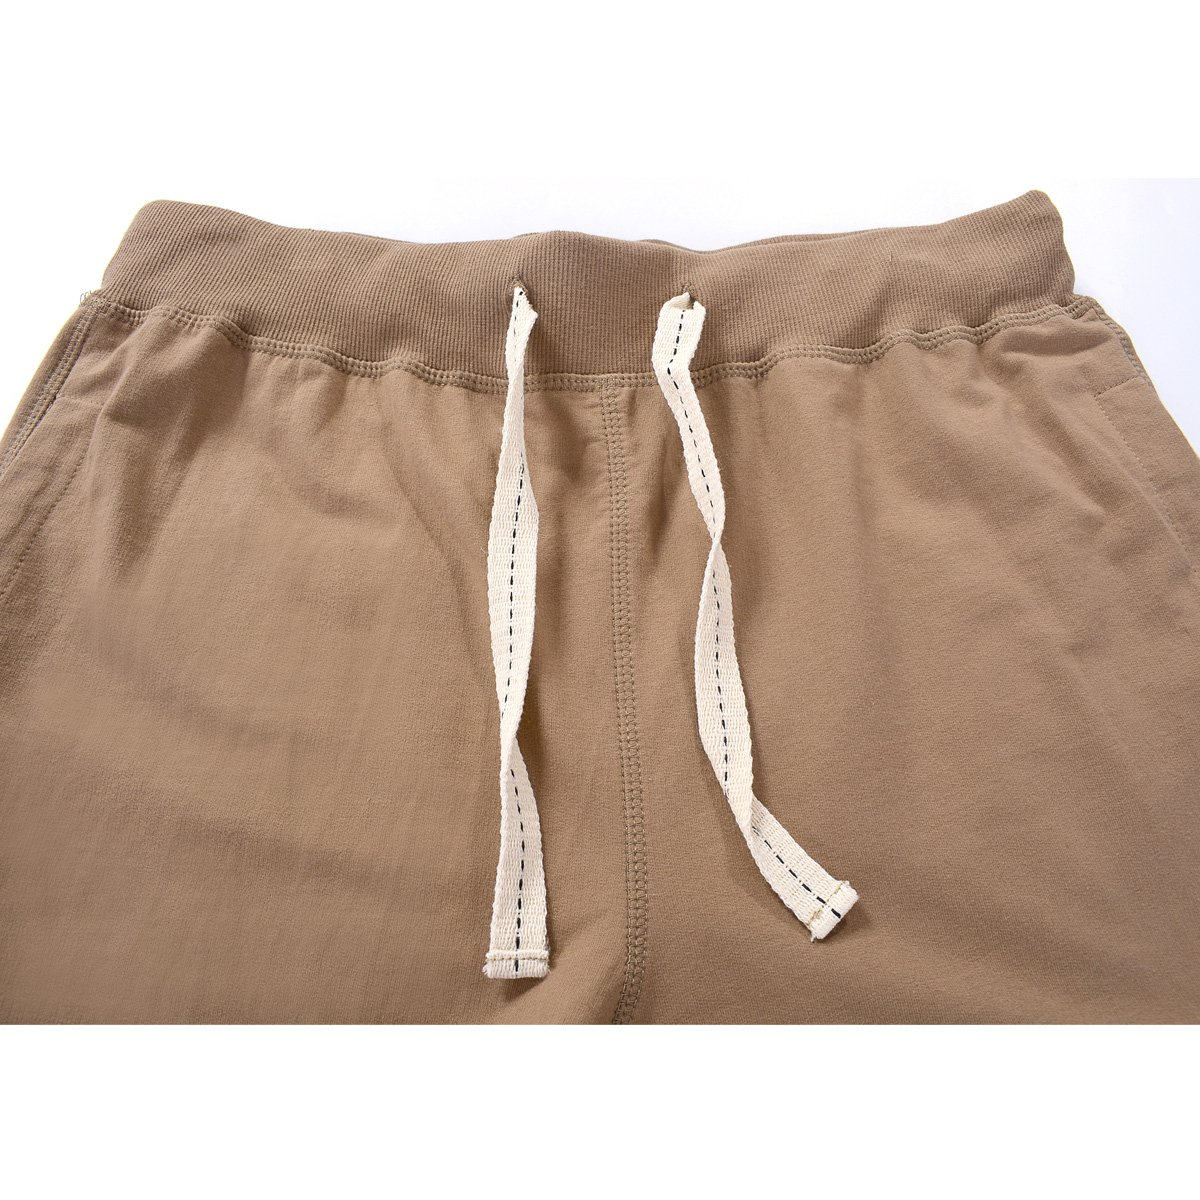 Amy Coulee Men's Cotton Casual Short with Pockets (S, Brown) by Amy Coulee (Image #3)